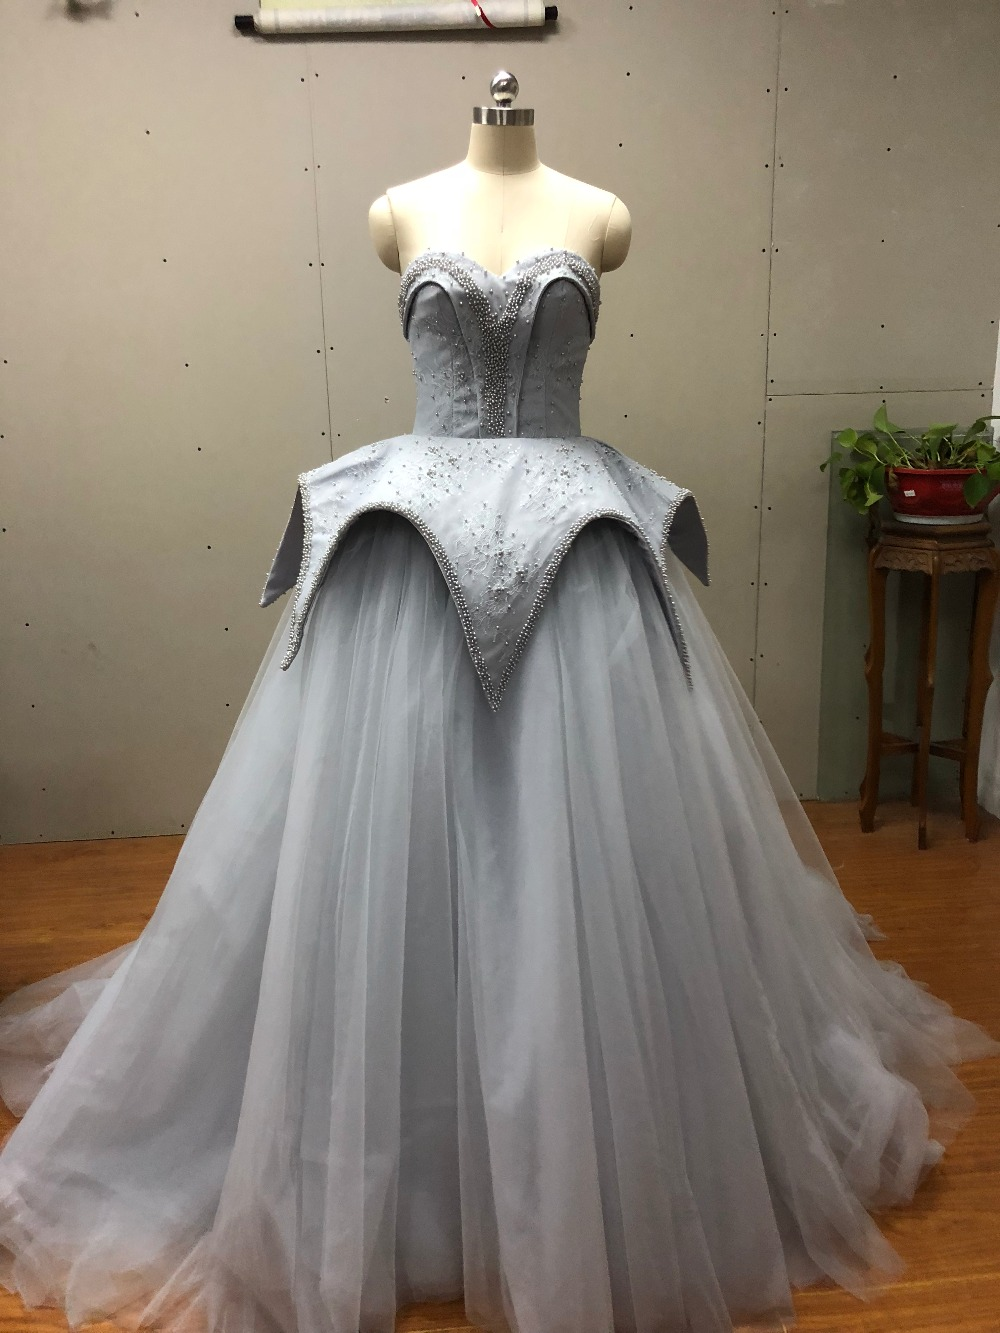 2018 Hot sale elegant sweetheart pearls wedding dresses handmade beaded long bridal gown champagne ball gown